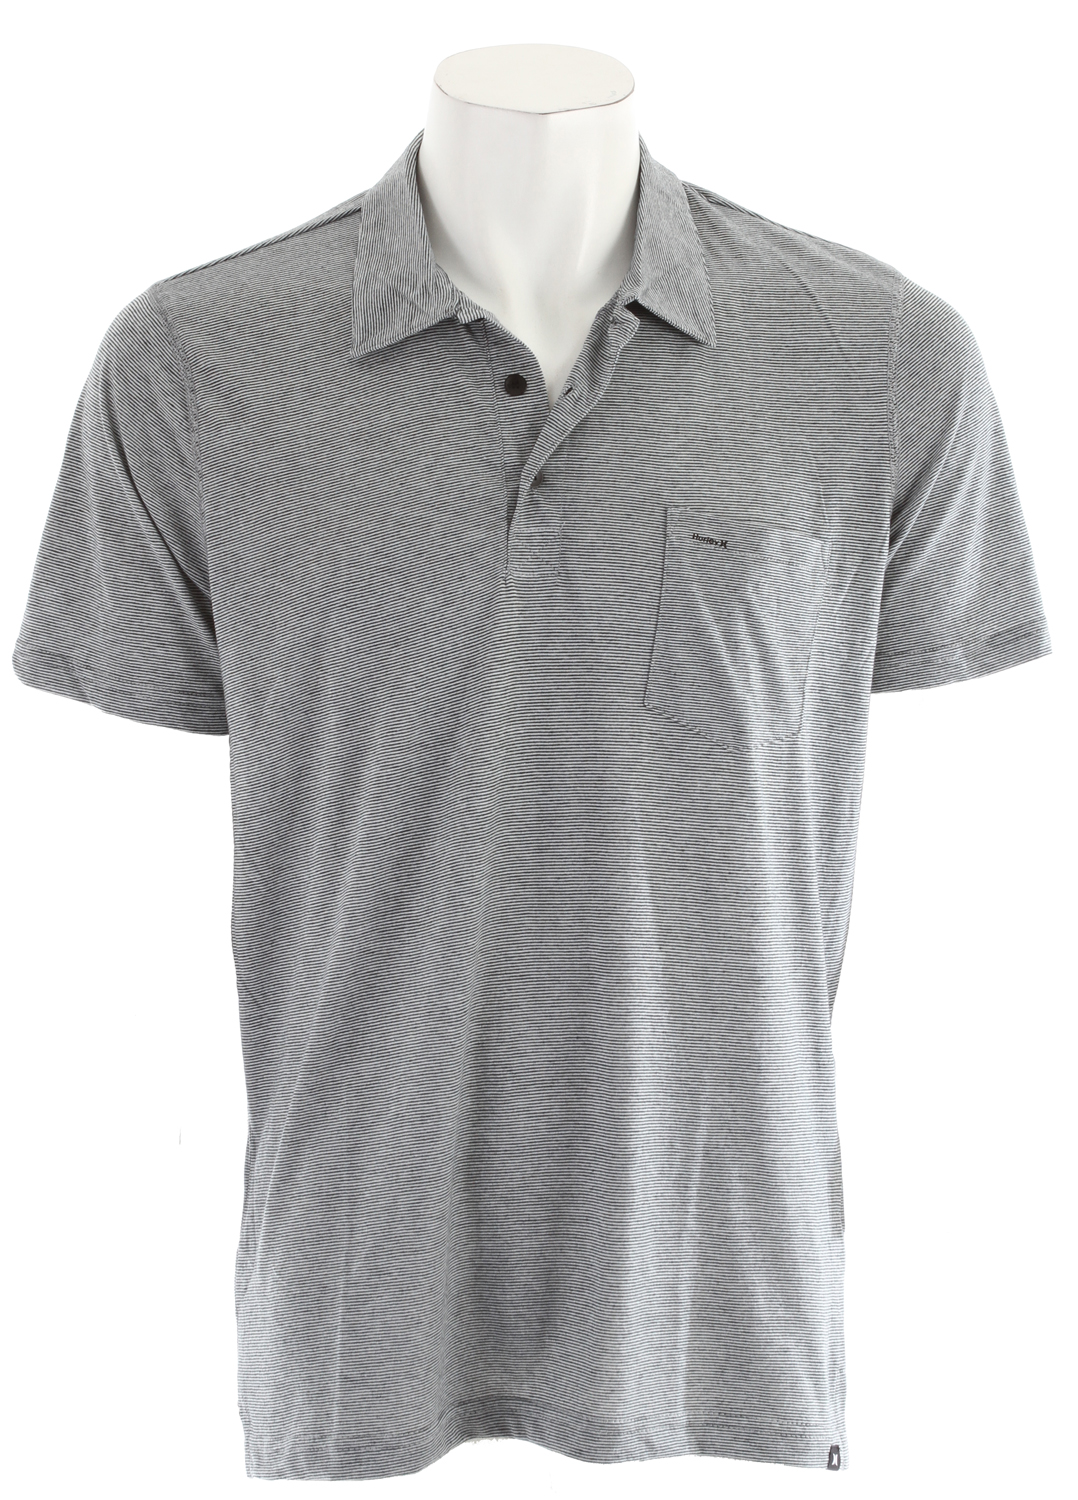 Surf Key Features of the Hurley Staple Mini Stripe Polo: 67% Polyester/33% Cotton Pocket with woven Hurley label - $21.95